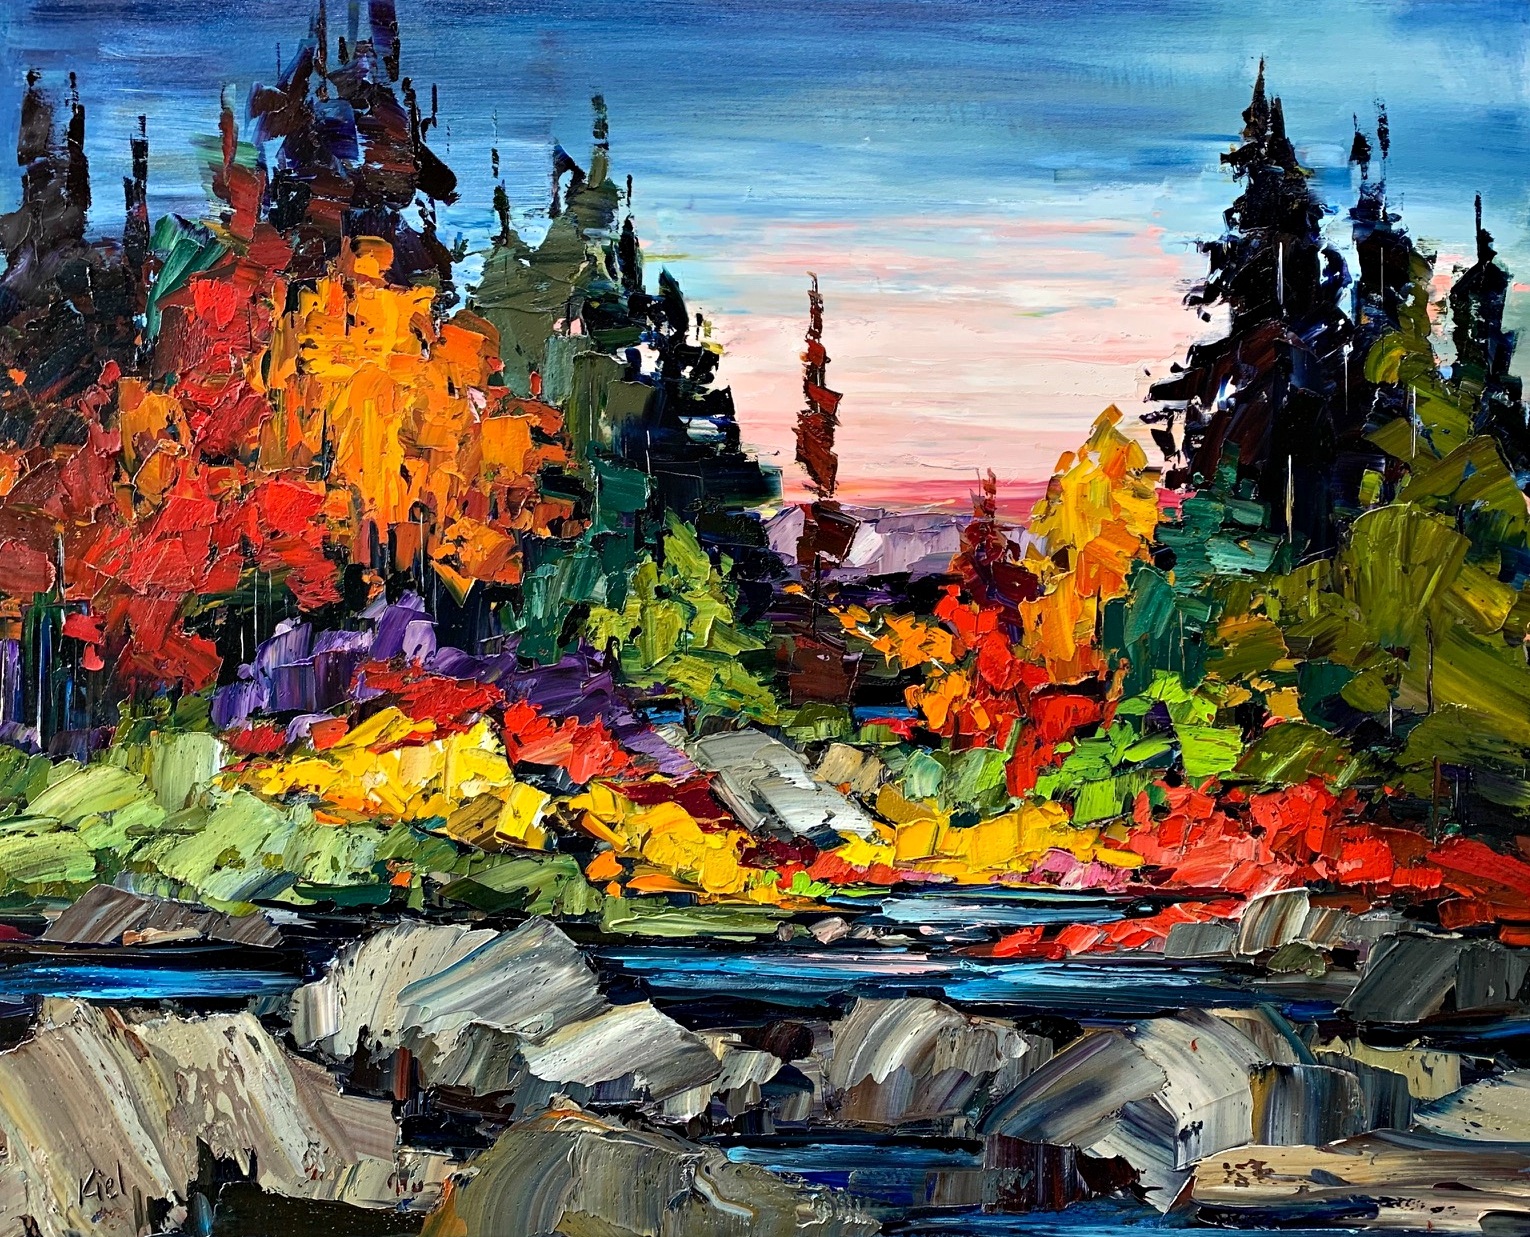 A Million Reasons Why, landscape painting by Kimberly Kiel | Effusion Art Gallery + Cast Glass Studio, Invermere BC